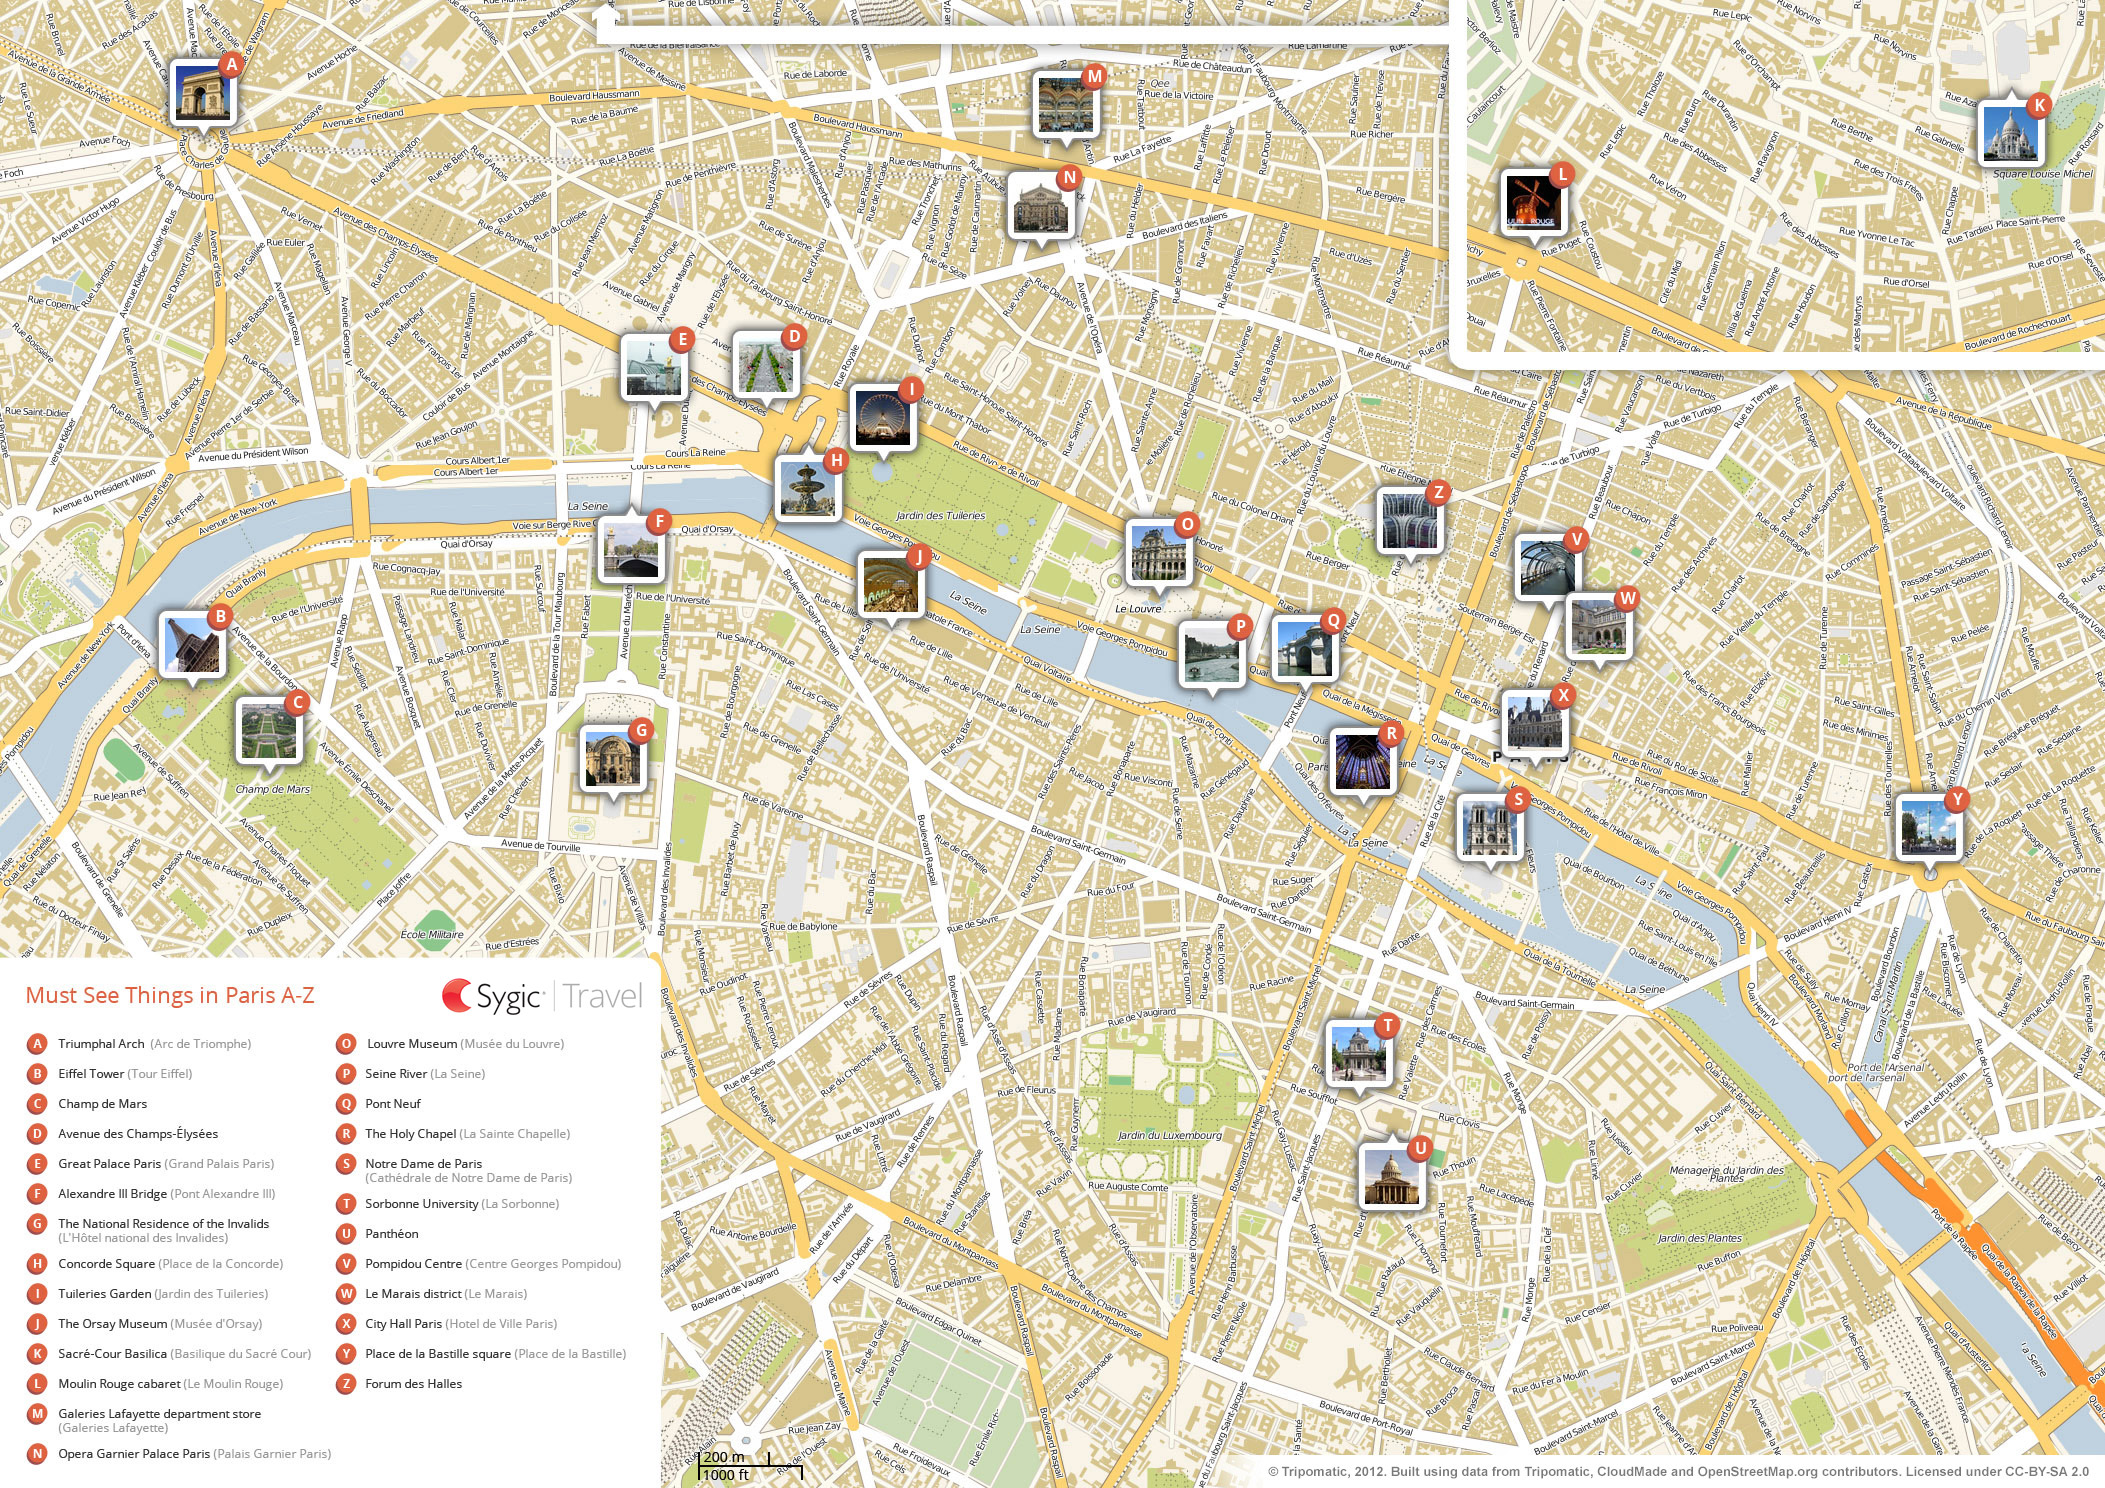 paris-attractions-map-large.jpg PARIS MAP